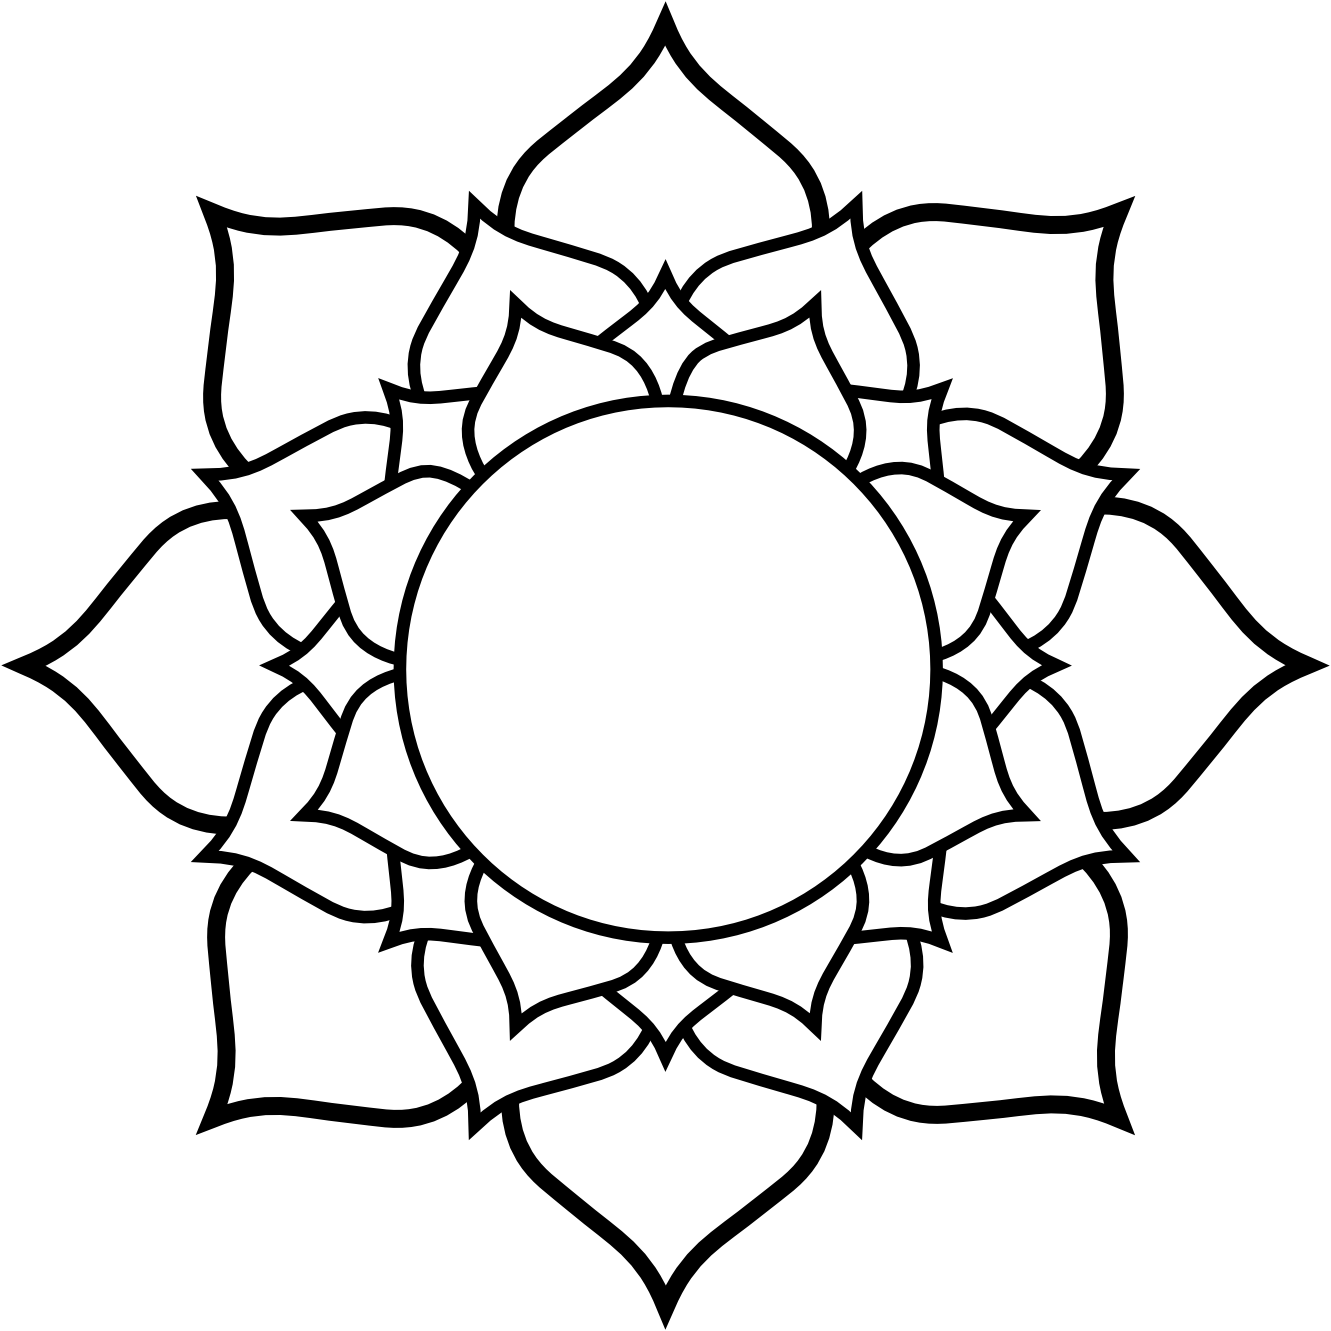 Simple Line Drawing Clip Art : Lotus flower line drawing clipart best